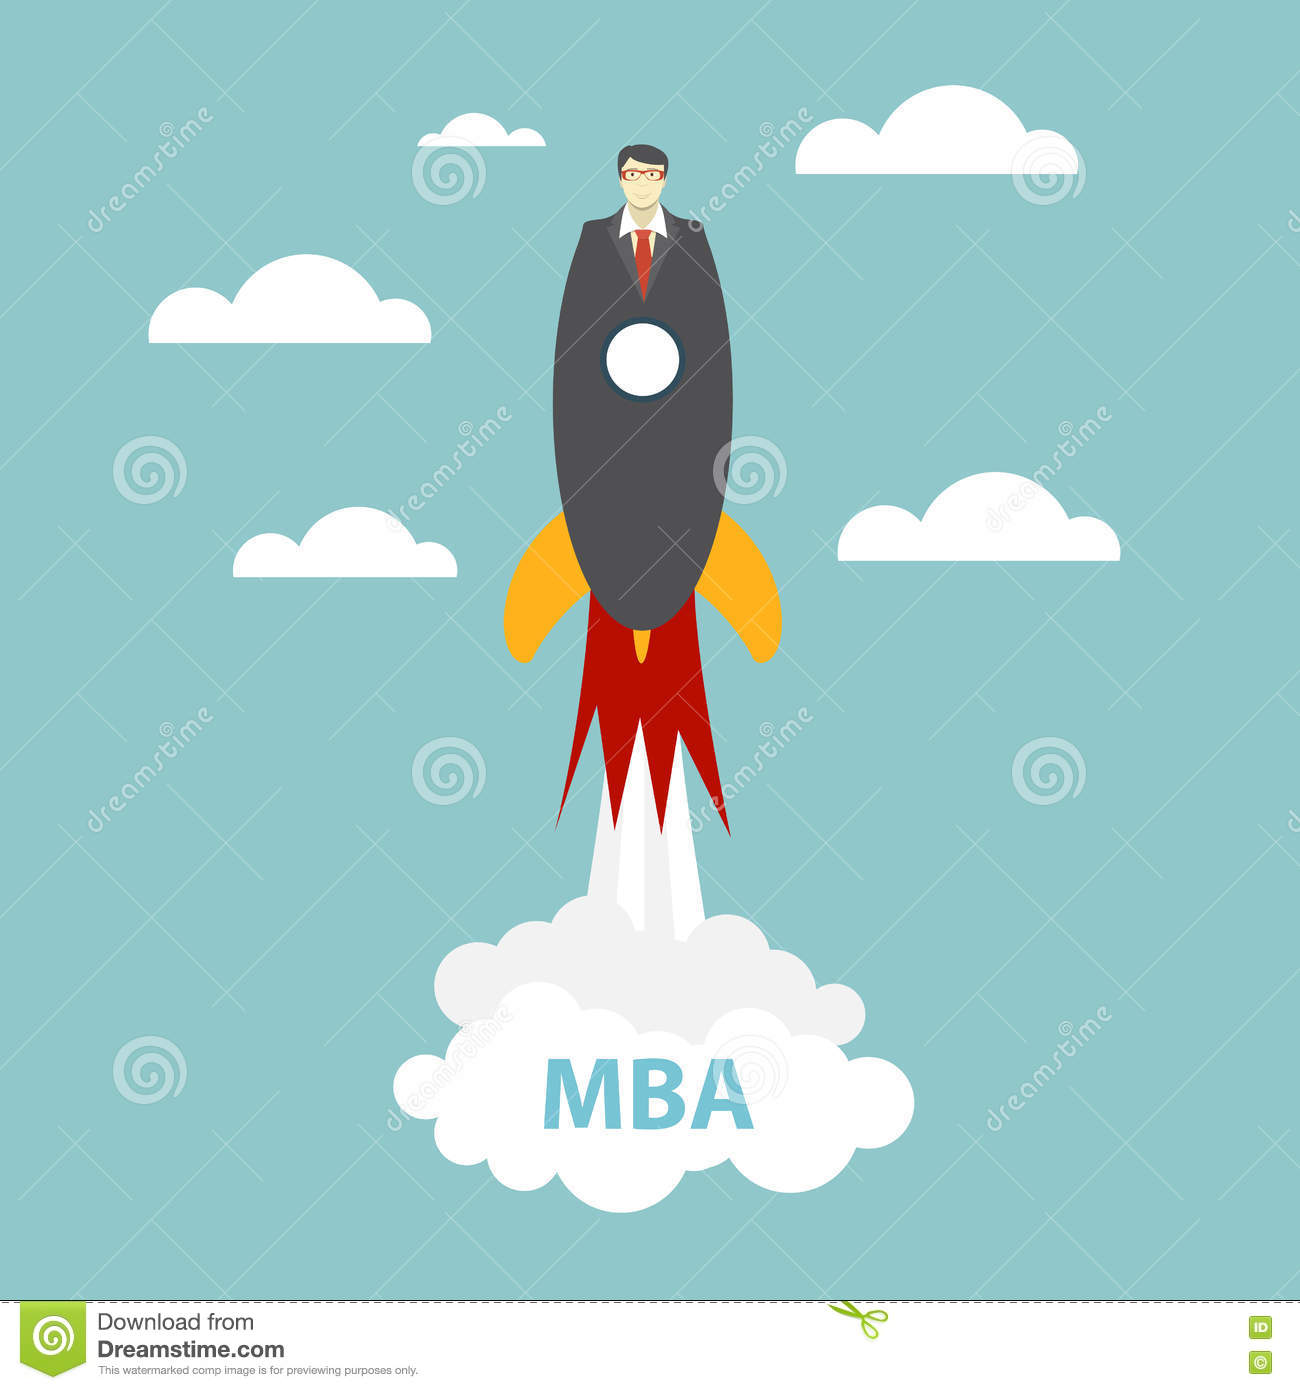 Business MBA Education Concept. Trends and innovation in education. Vector Illustration